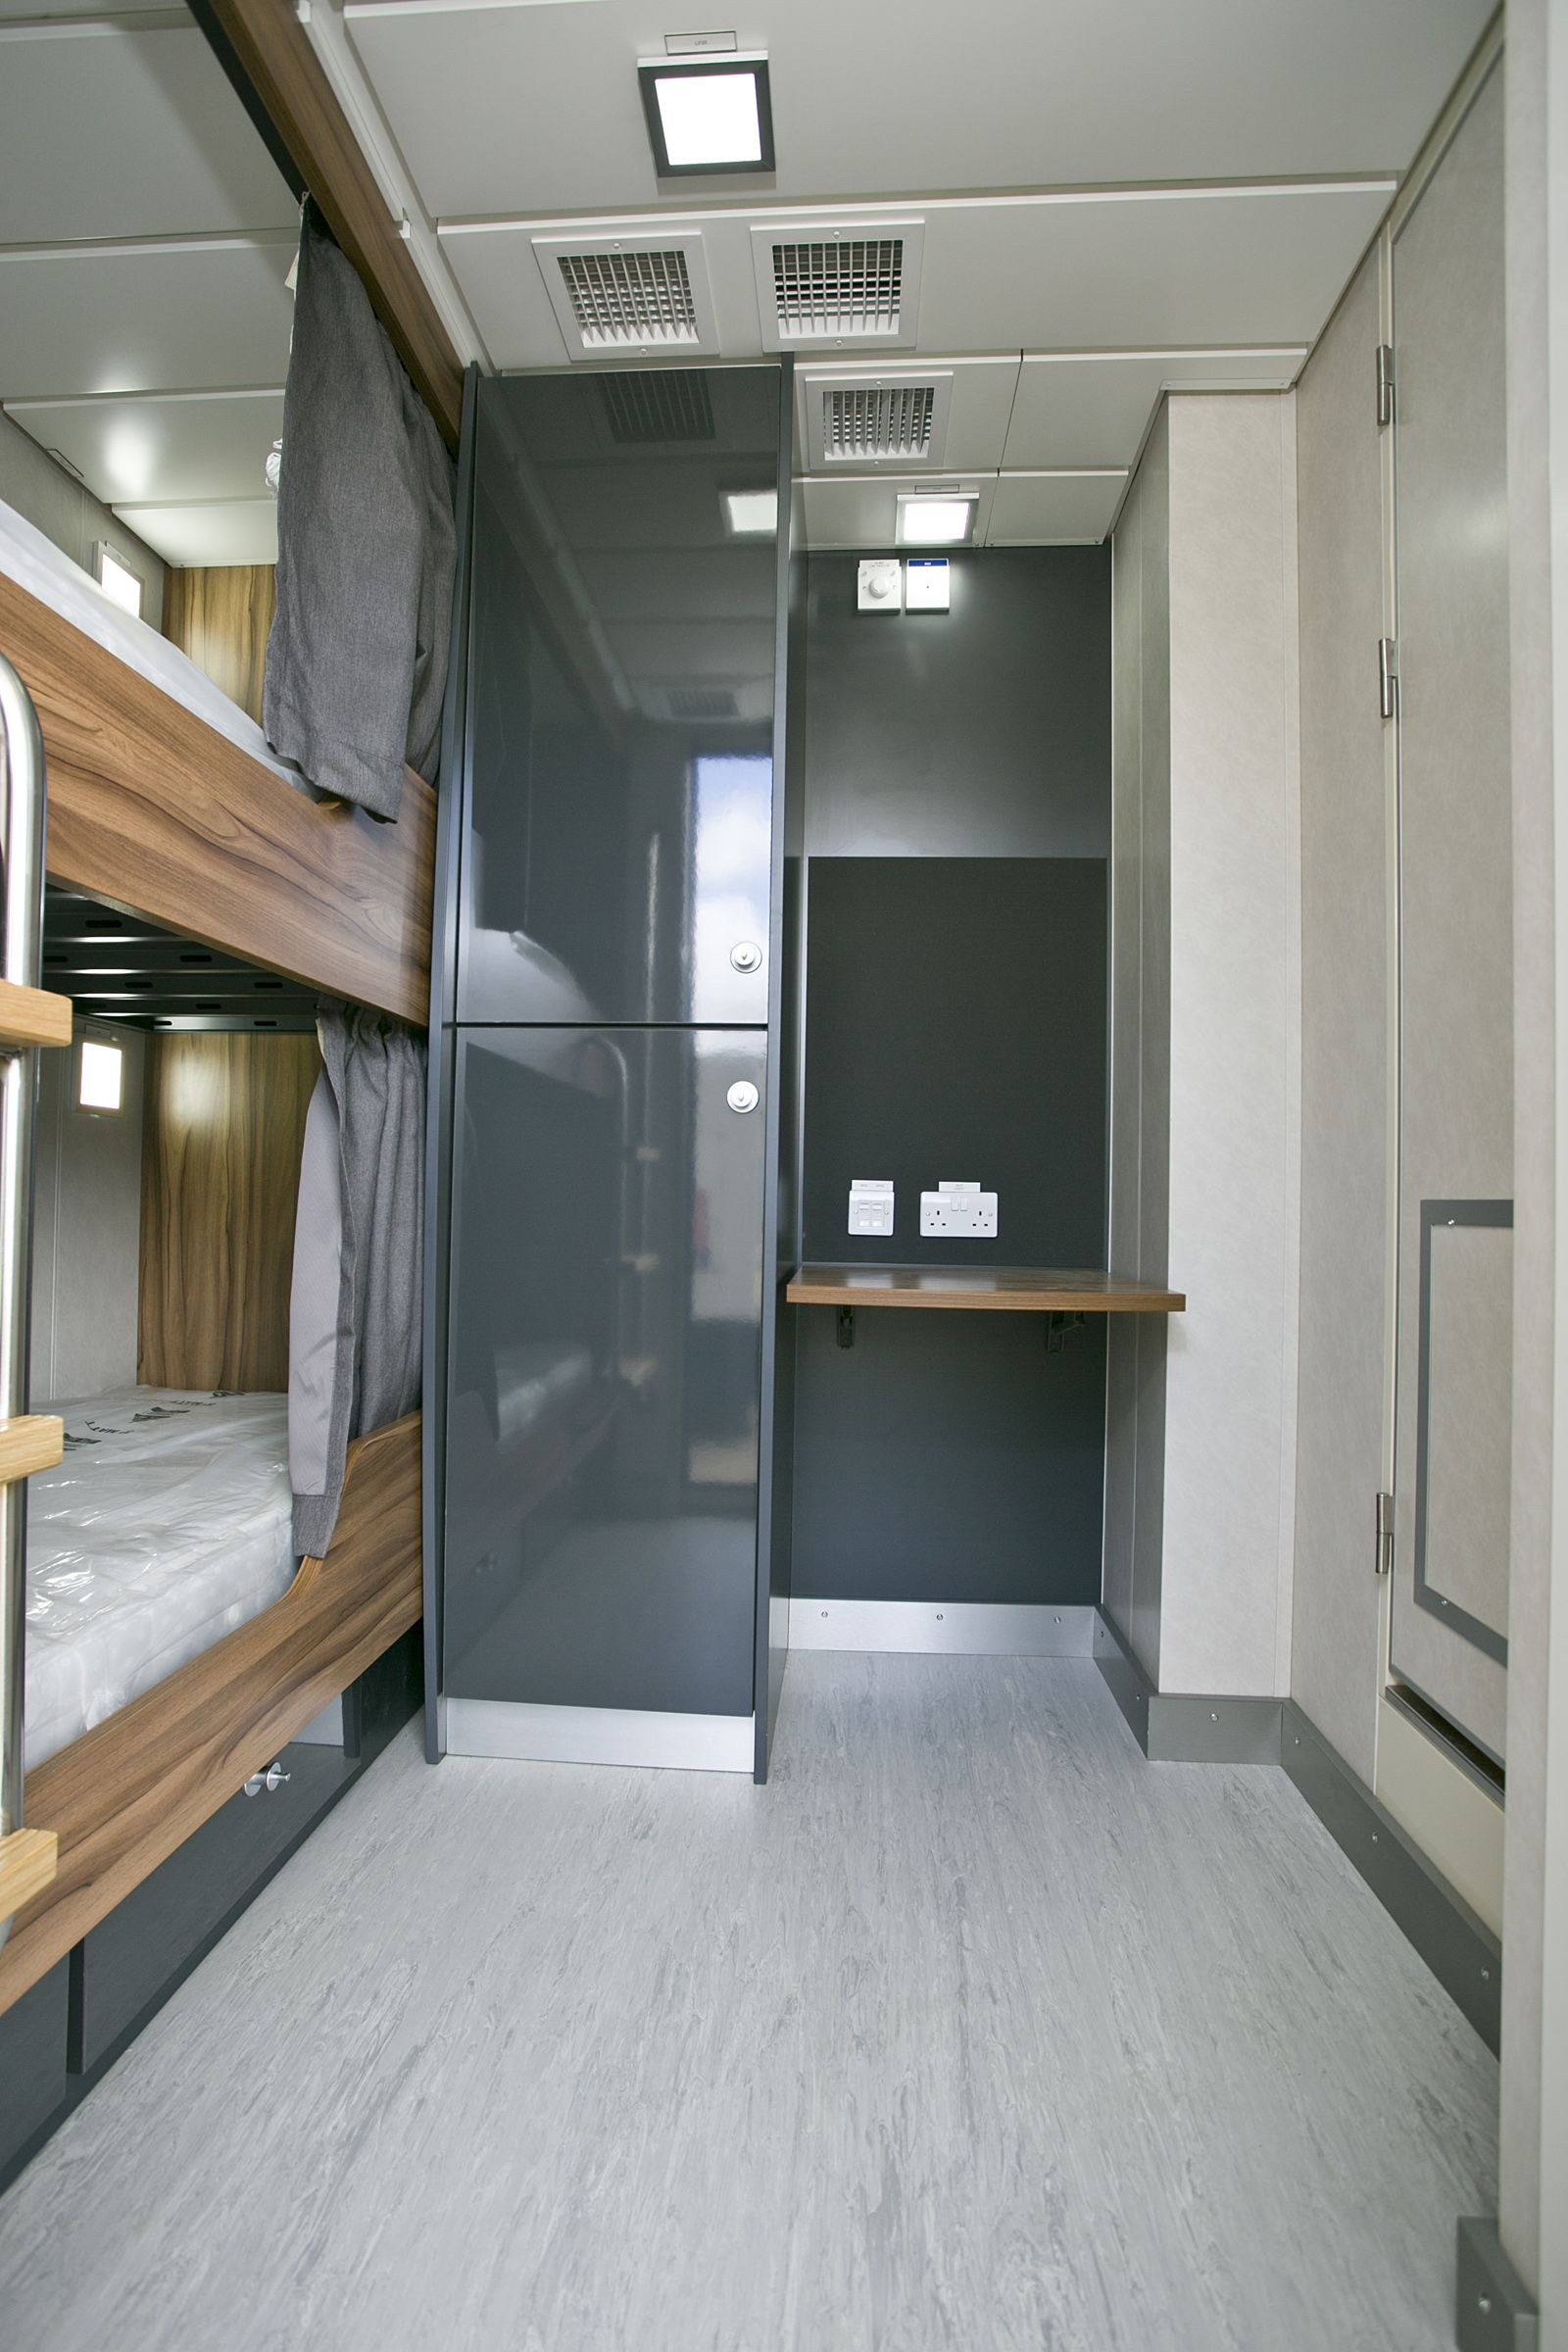 interior shot 6m accommodation unit available from our bases